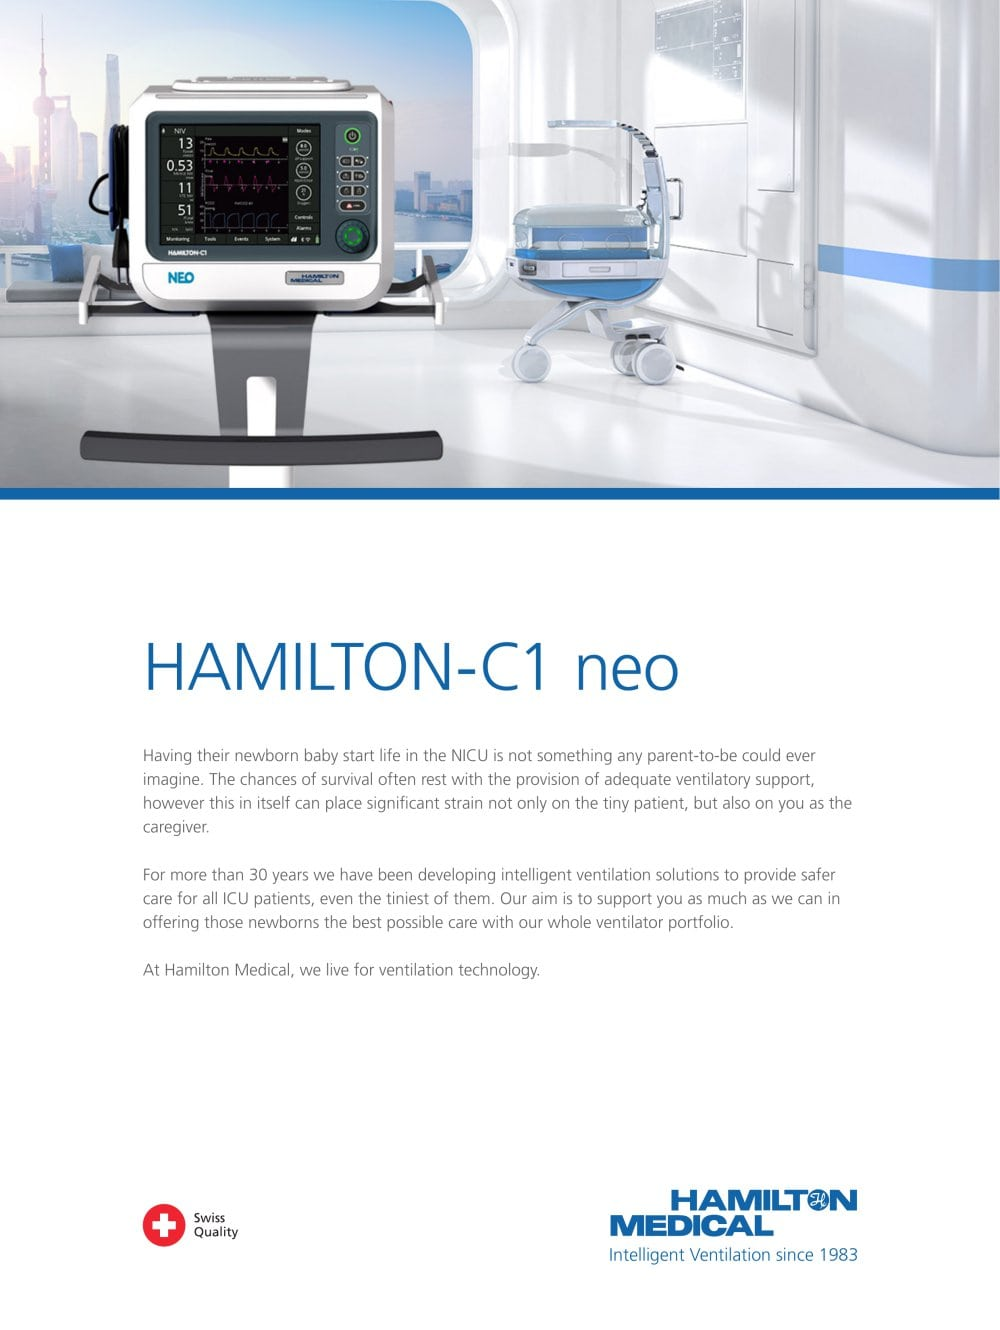 HAMILTON-C1 neo brochure - 1 / 8 Pages